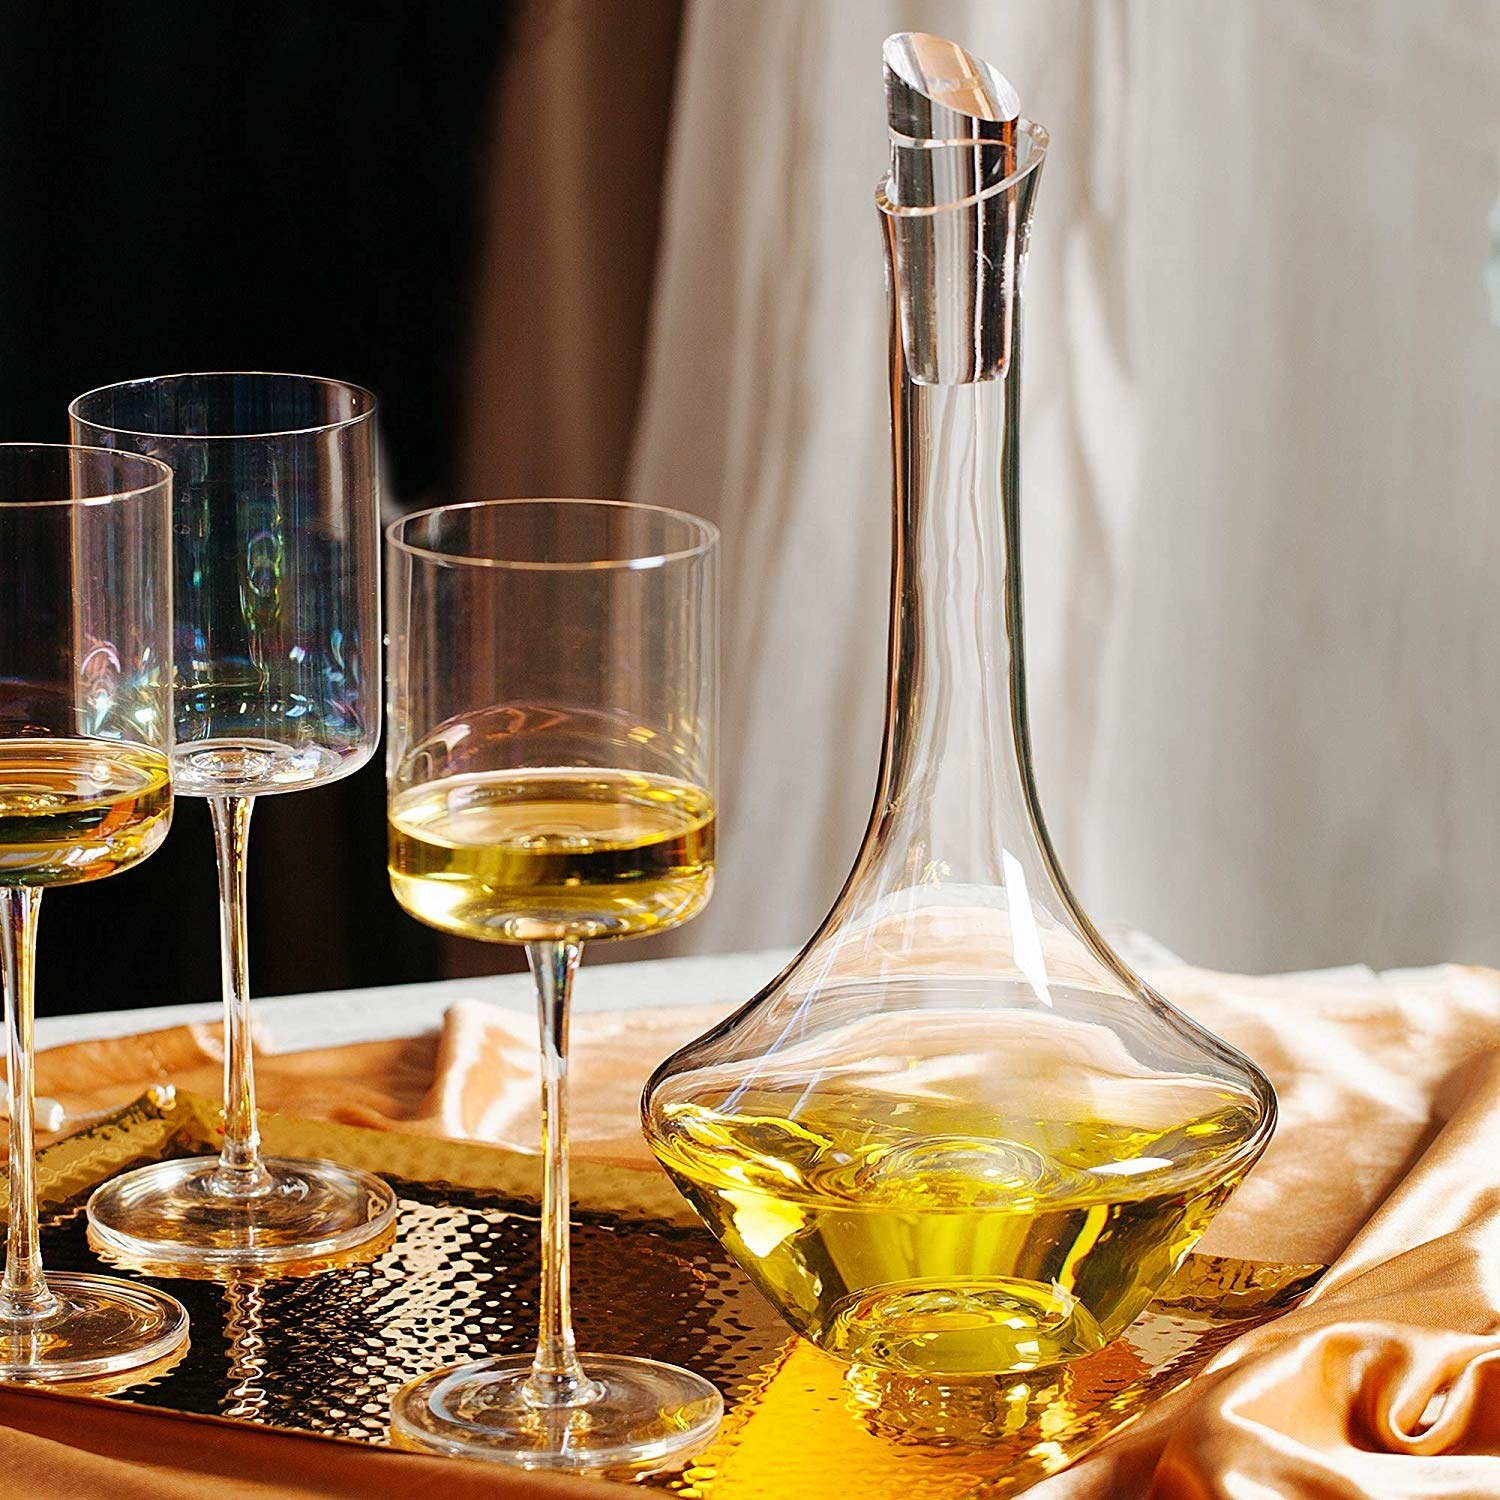 the glass wine decanter